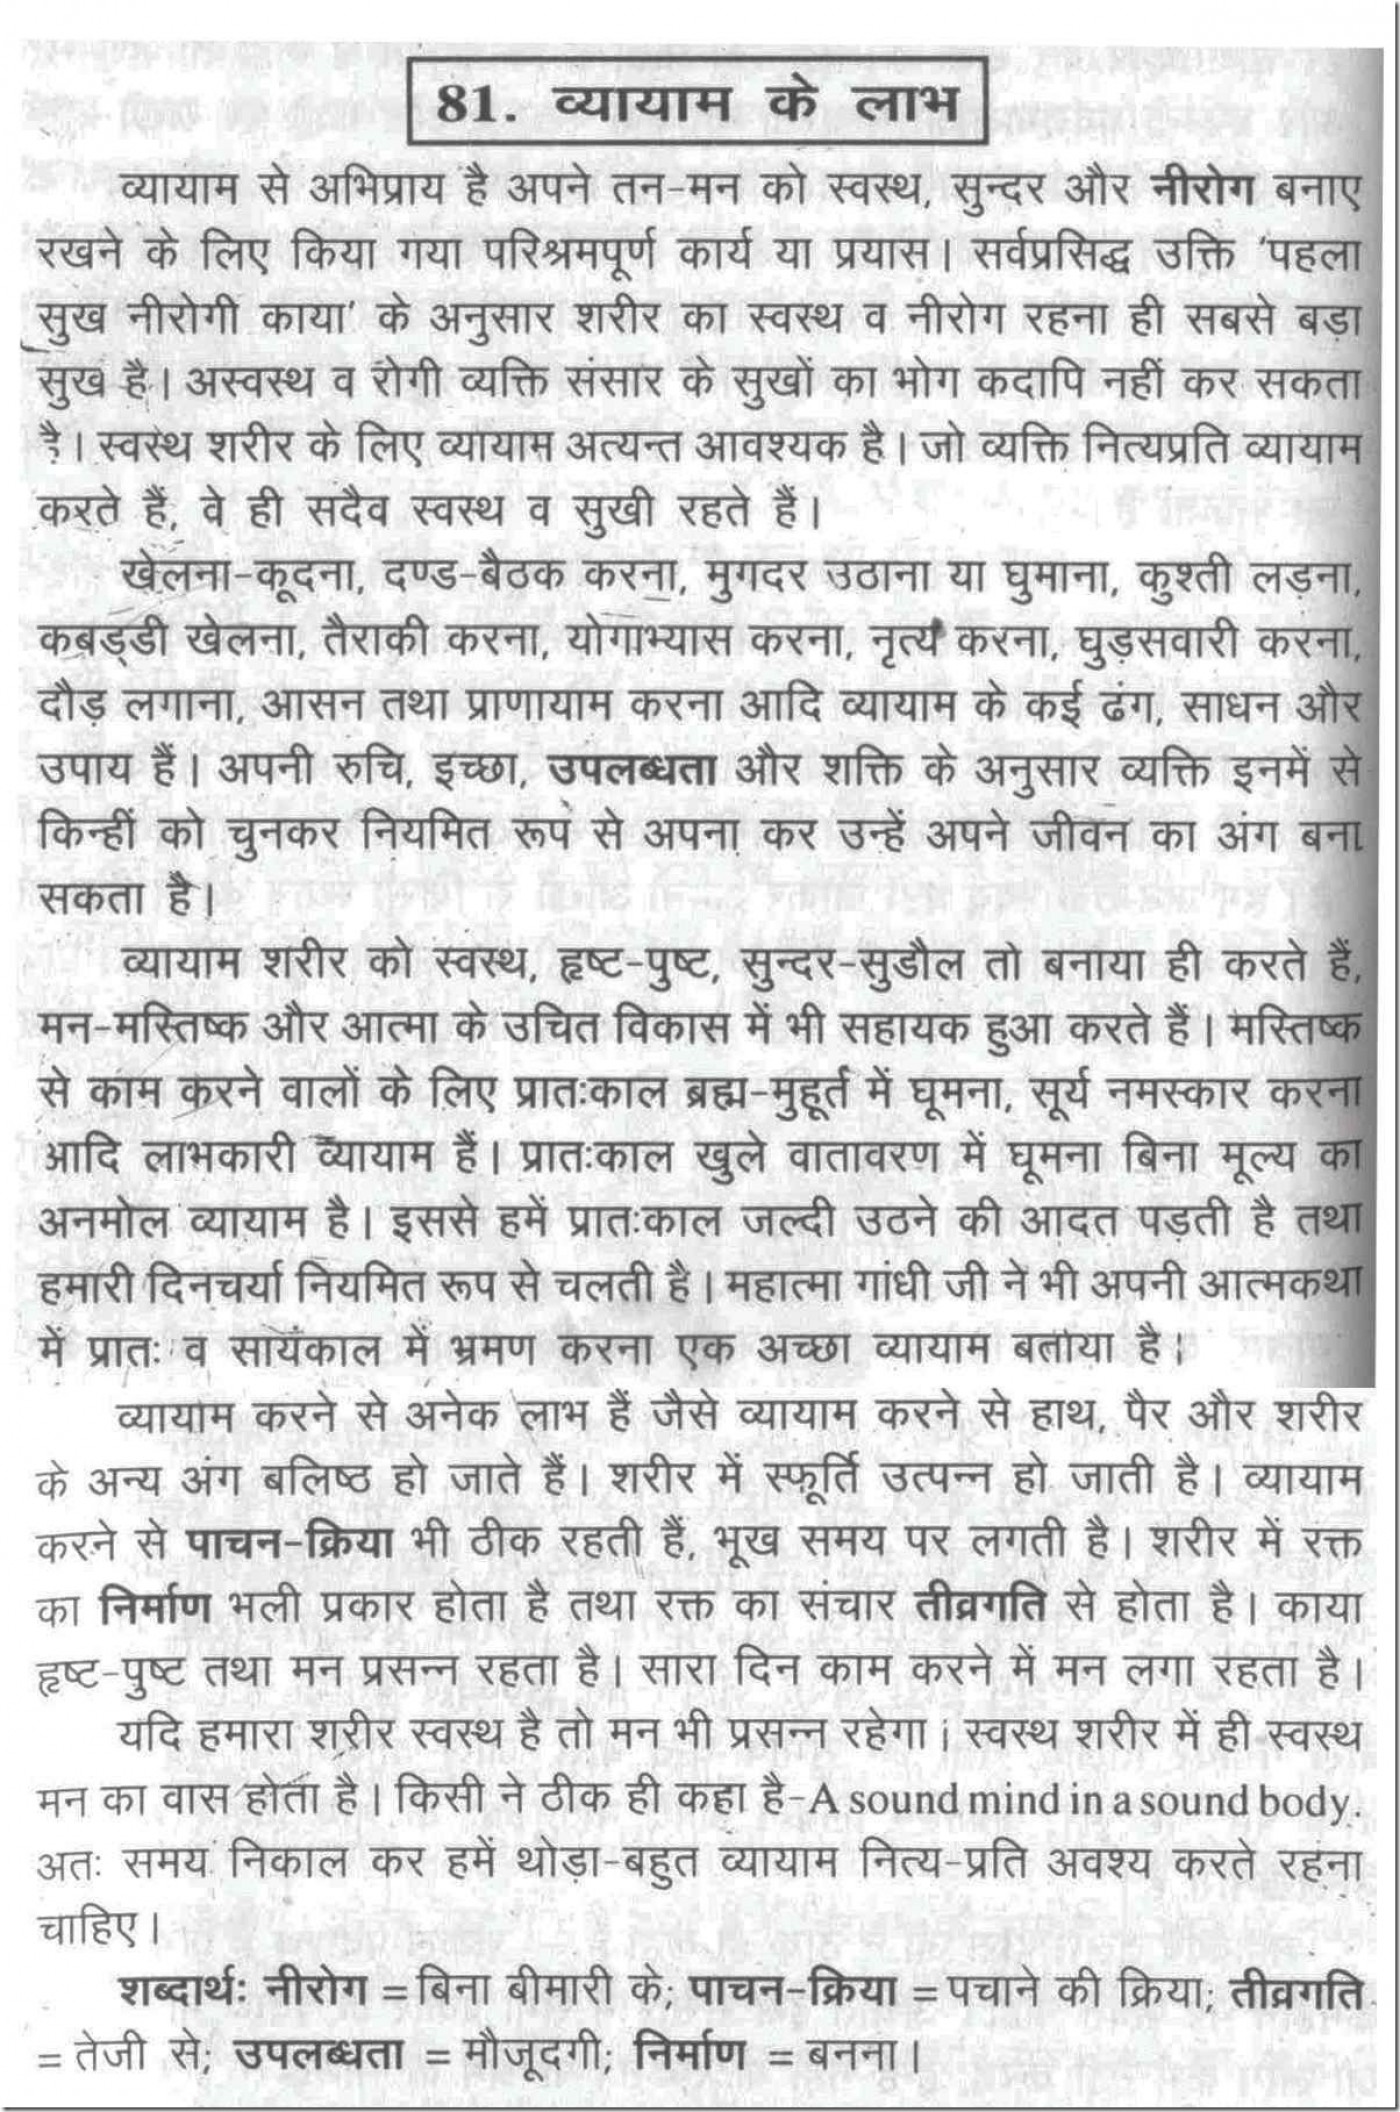 011 2563478896 Essay On Health And Fitness Through Food Good Habits In Hindi Exceptional Habit 1400